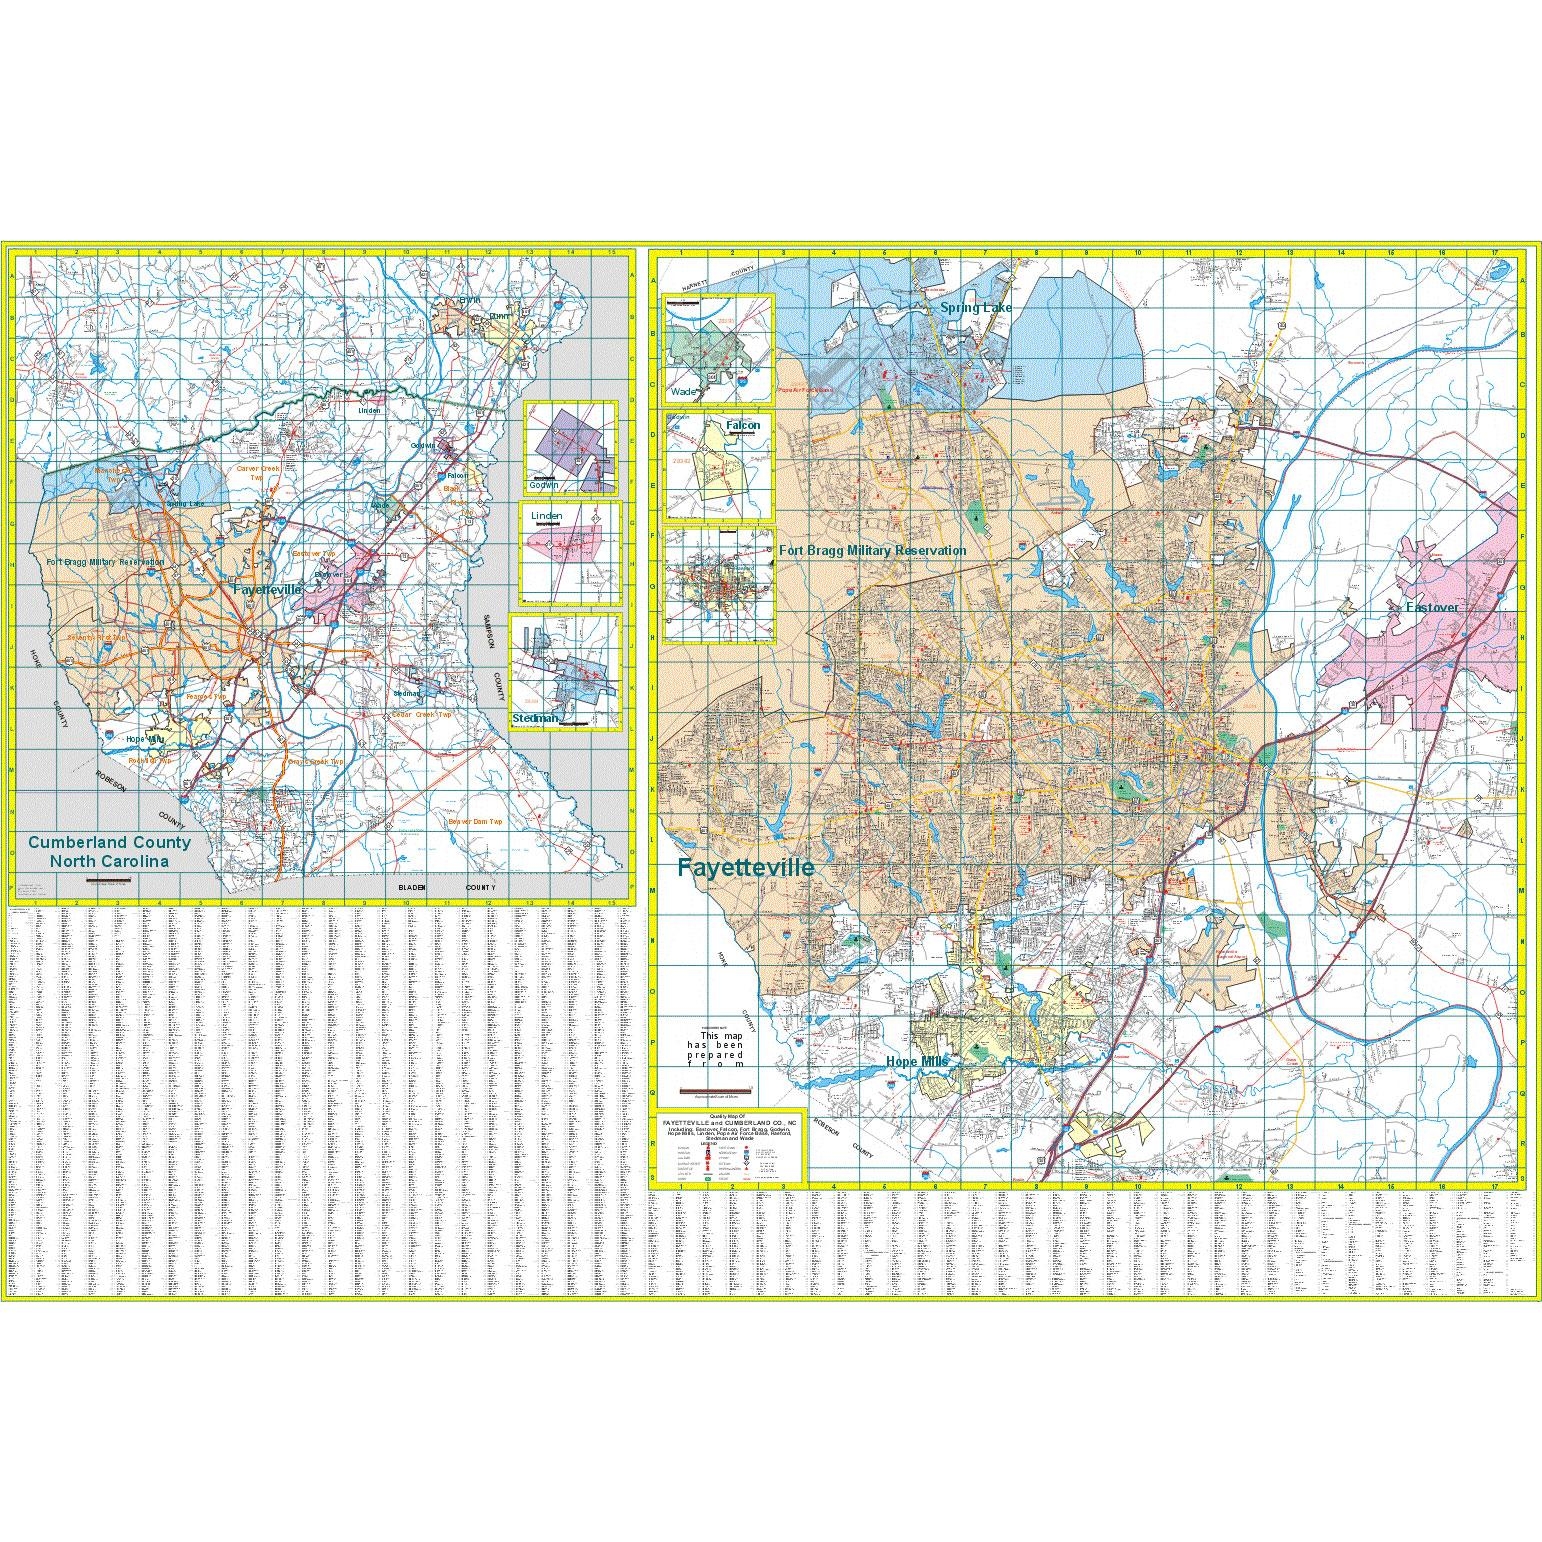 Fayetteville And Cumberland County Nc Wall Map The Map Shop